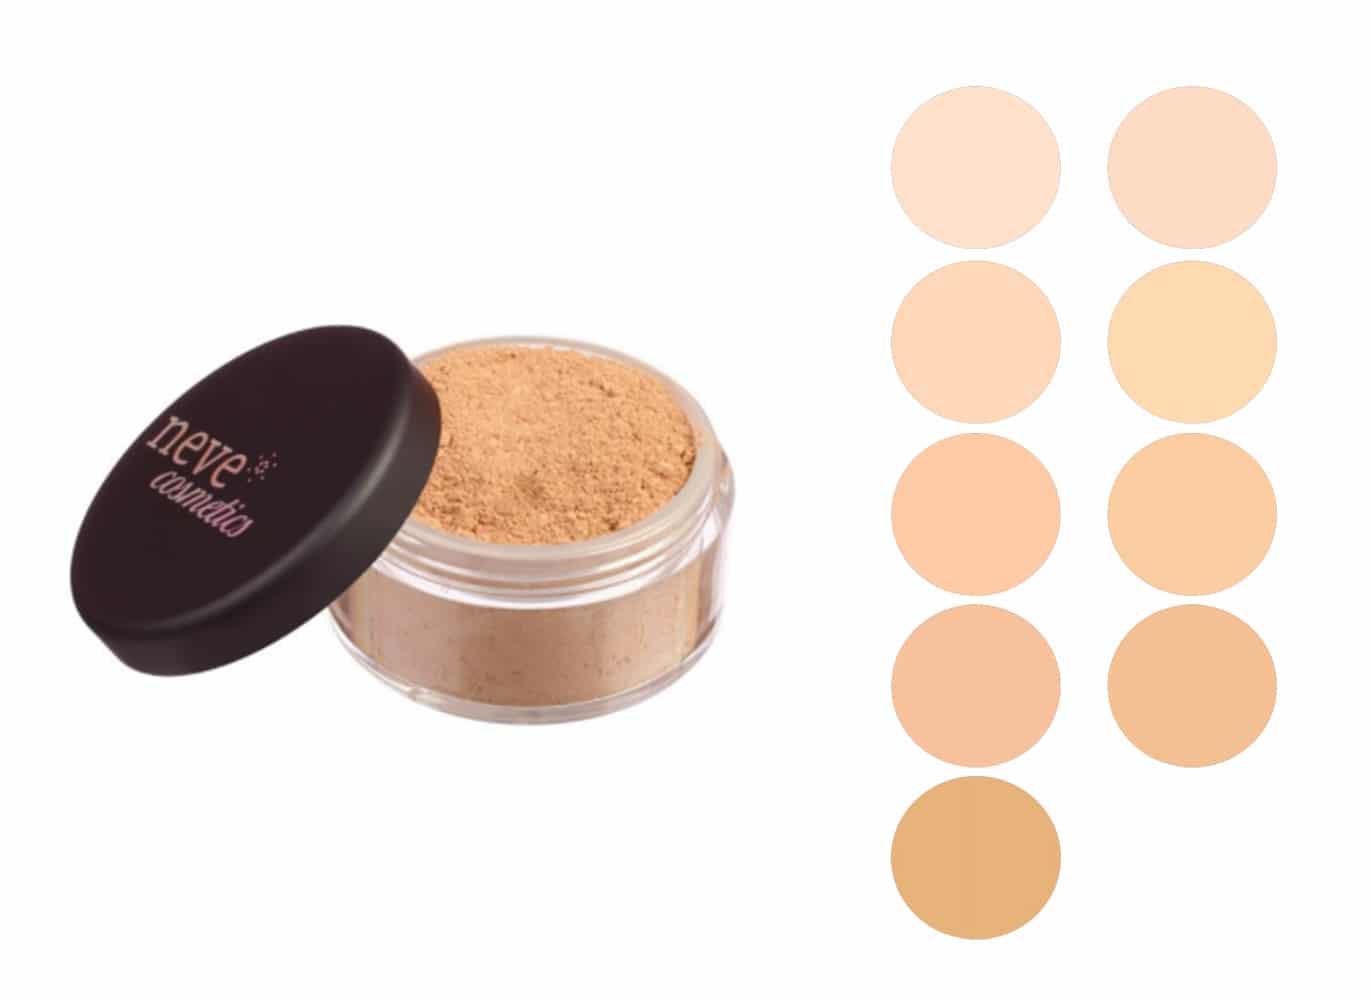 Neve Cosmetics High Coverage Fondotinta